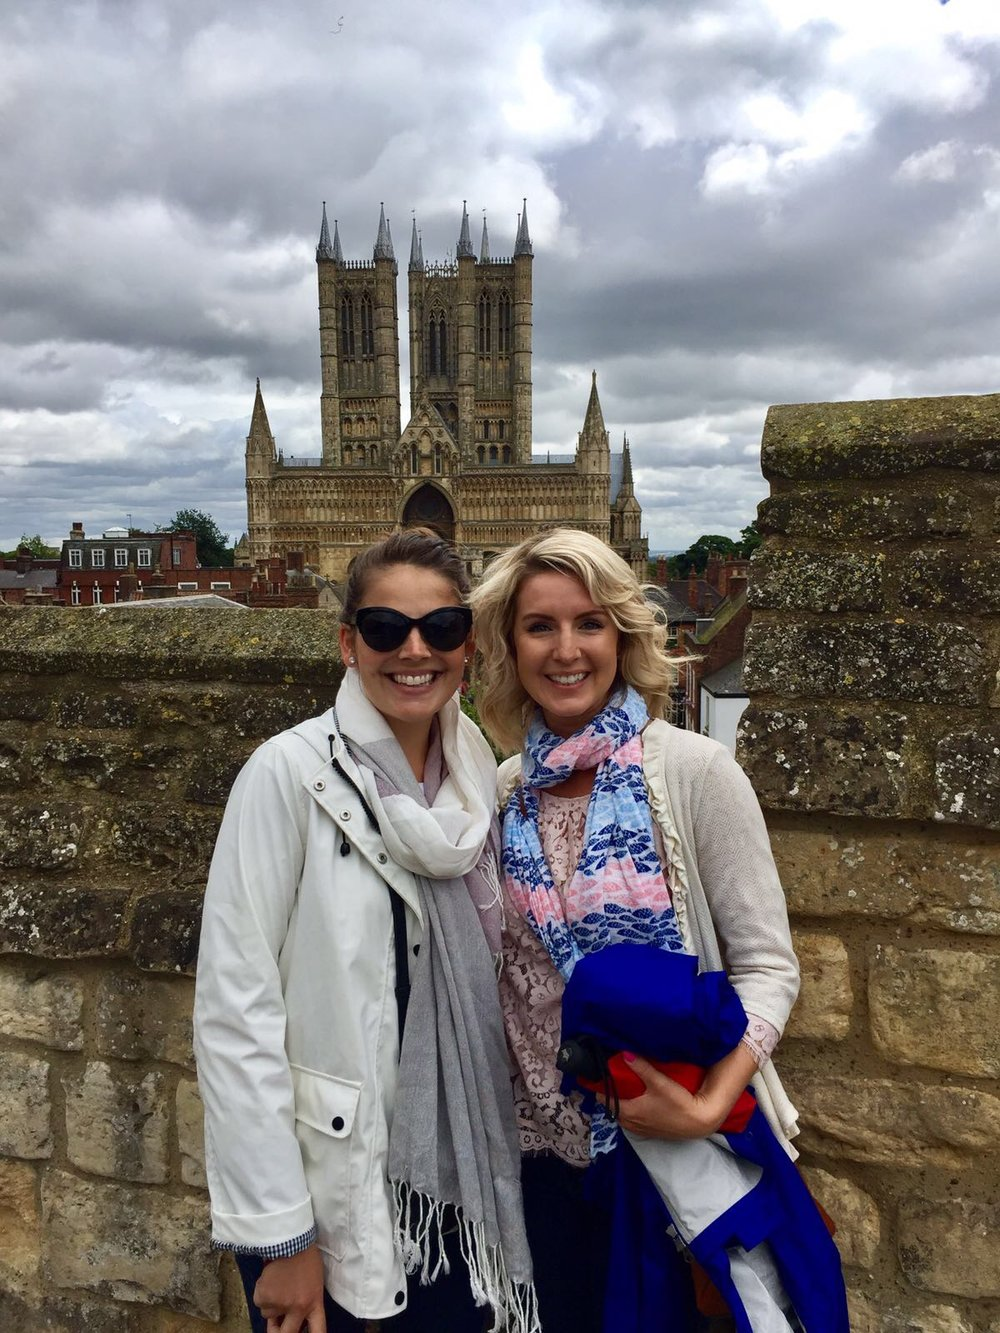 Quick stop in Lincoln, England to visit friends! August, 2017